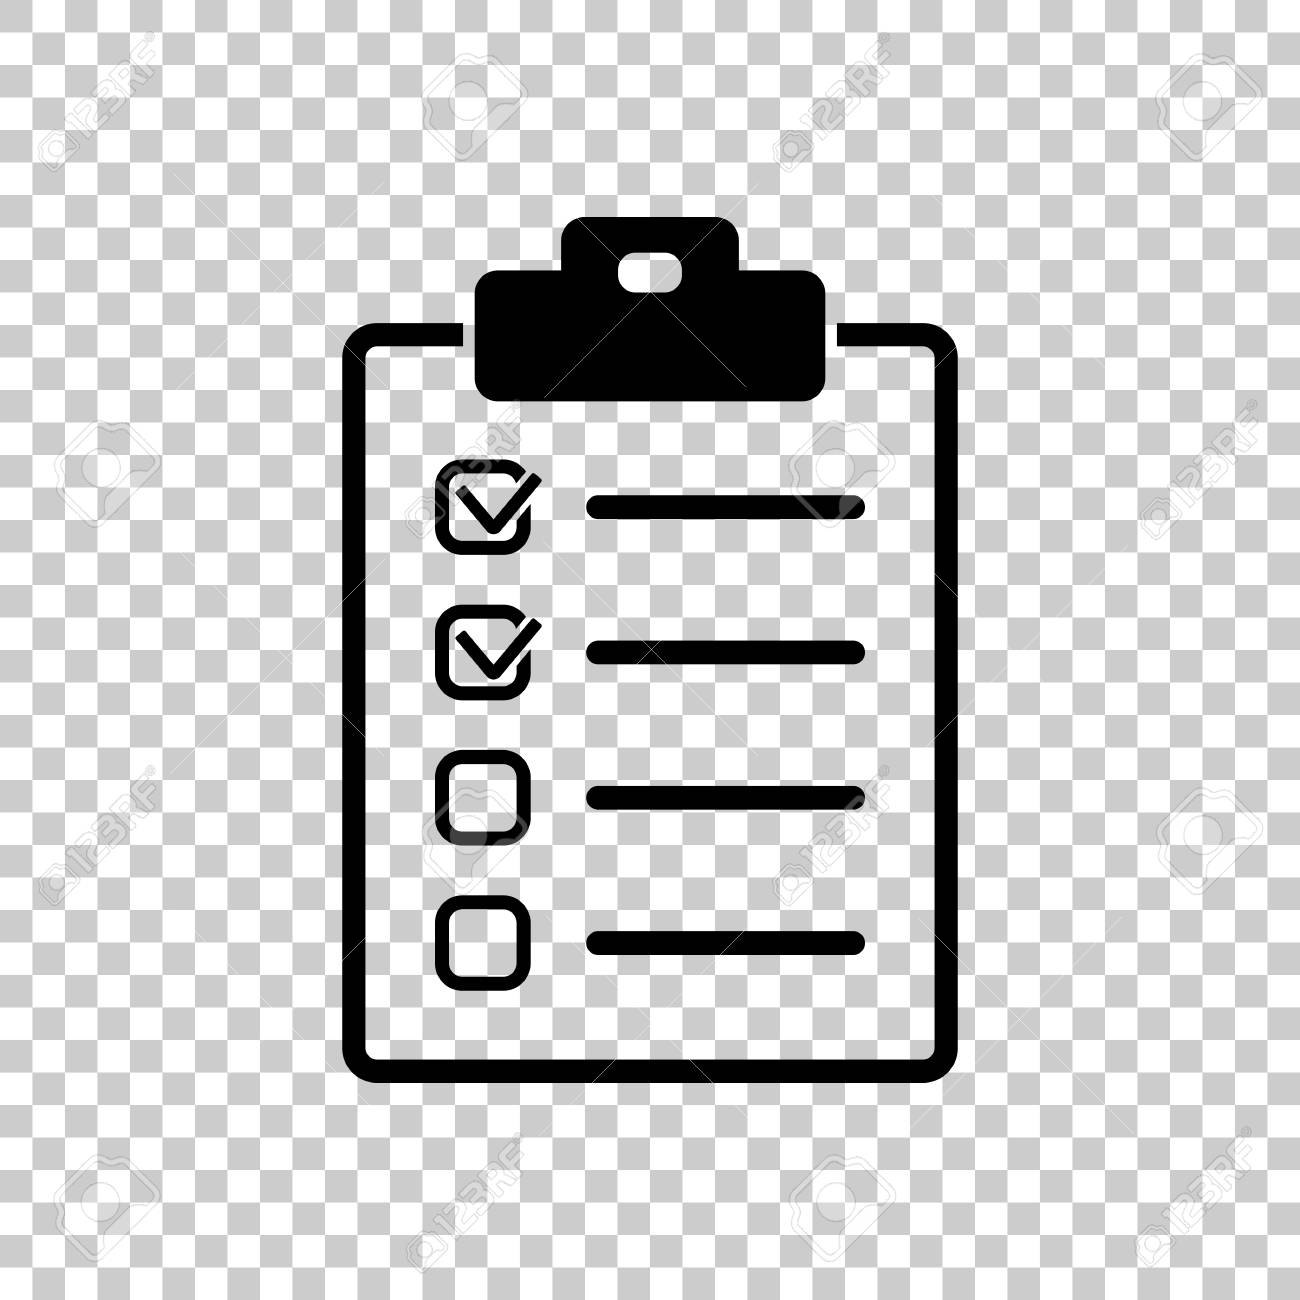 checklist icon. black icon on transparent background. royalty free